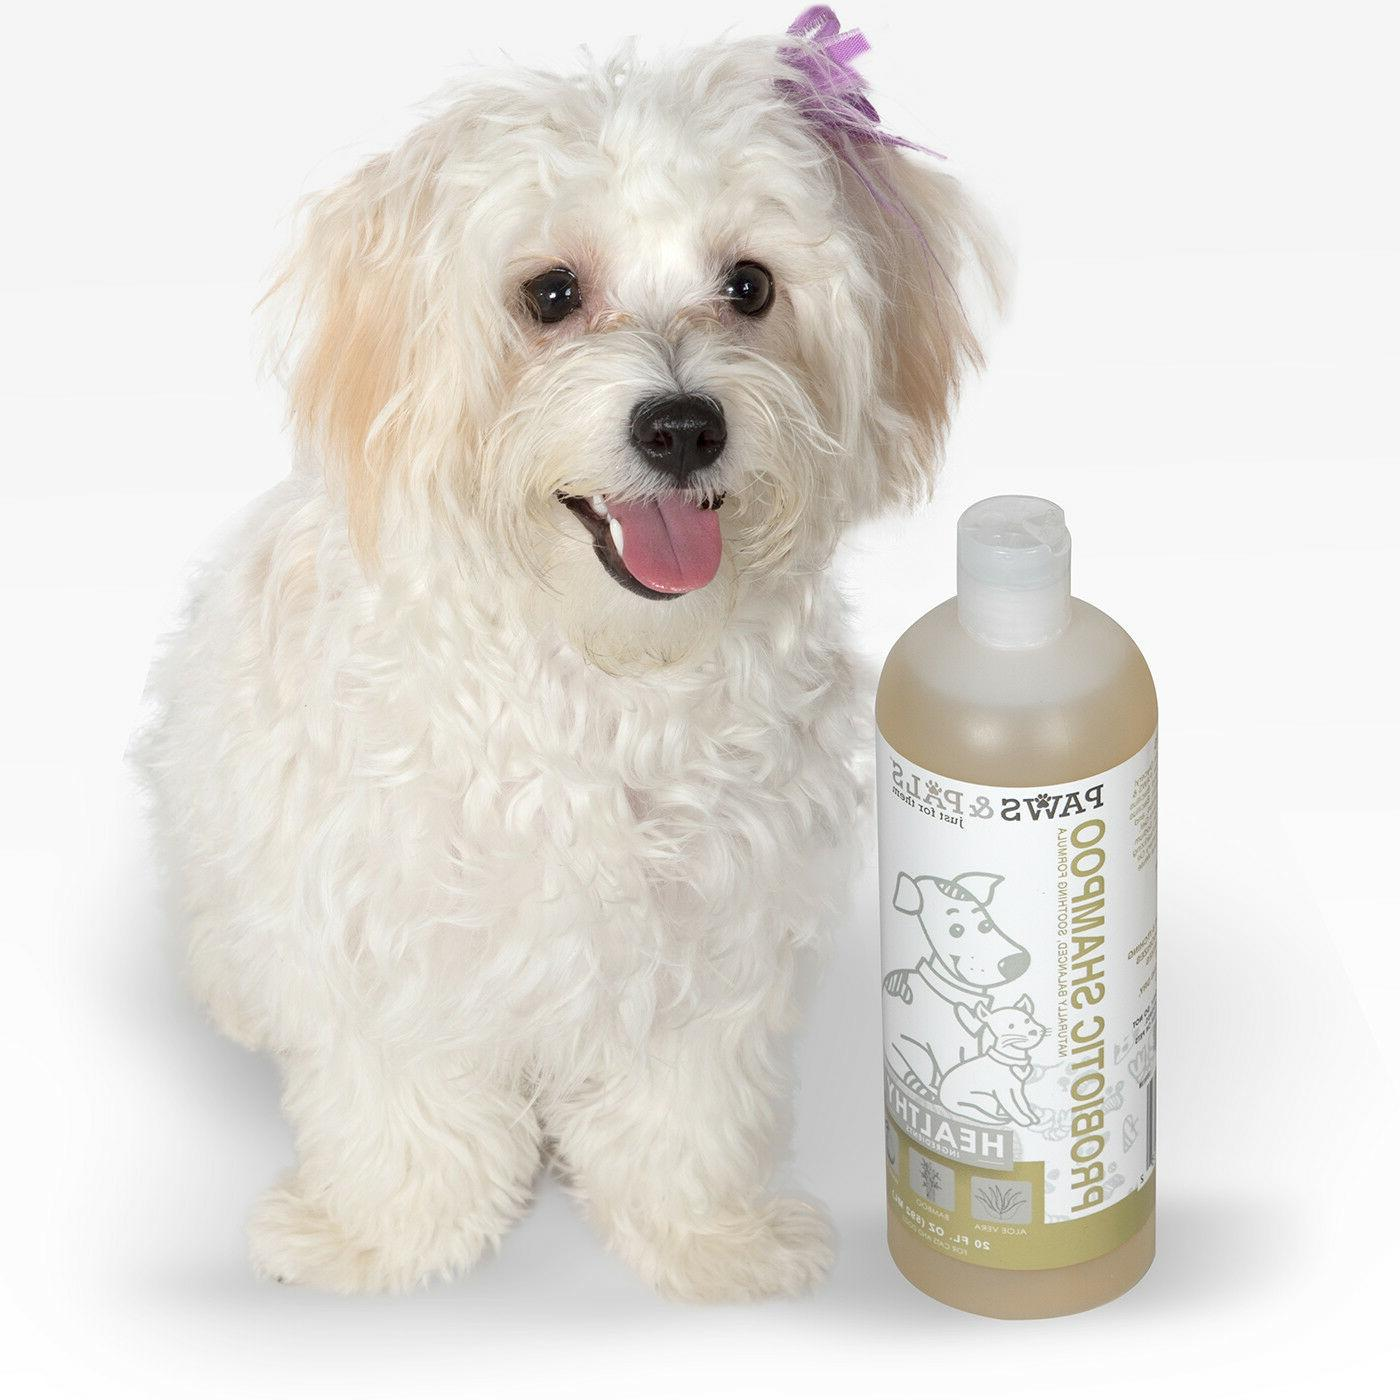 Probiotic Shampoo for Dogs Cats Cleaning Wash